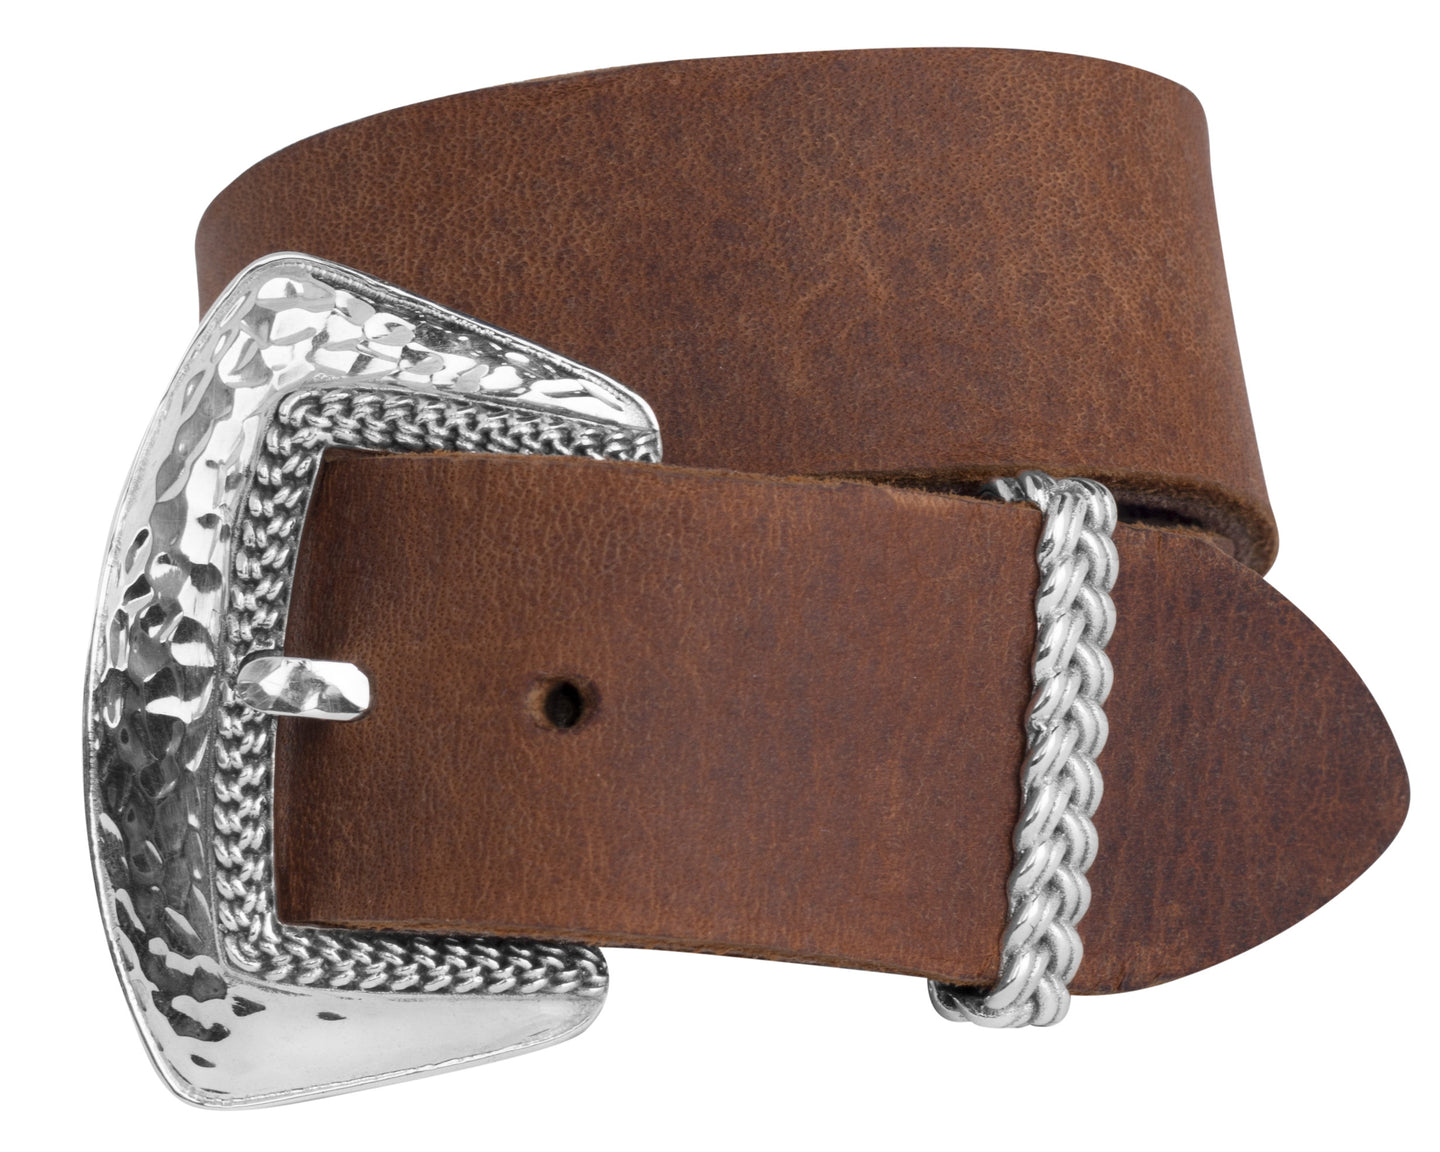 Hammered Sterling Silver buckle brown leather wrap bracelet or choker necklace